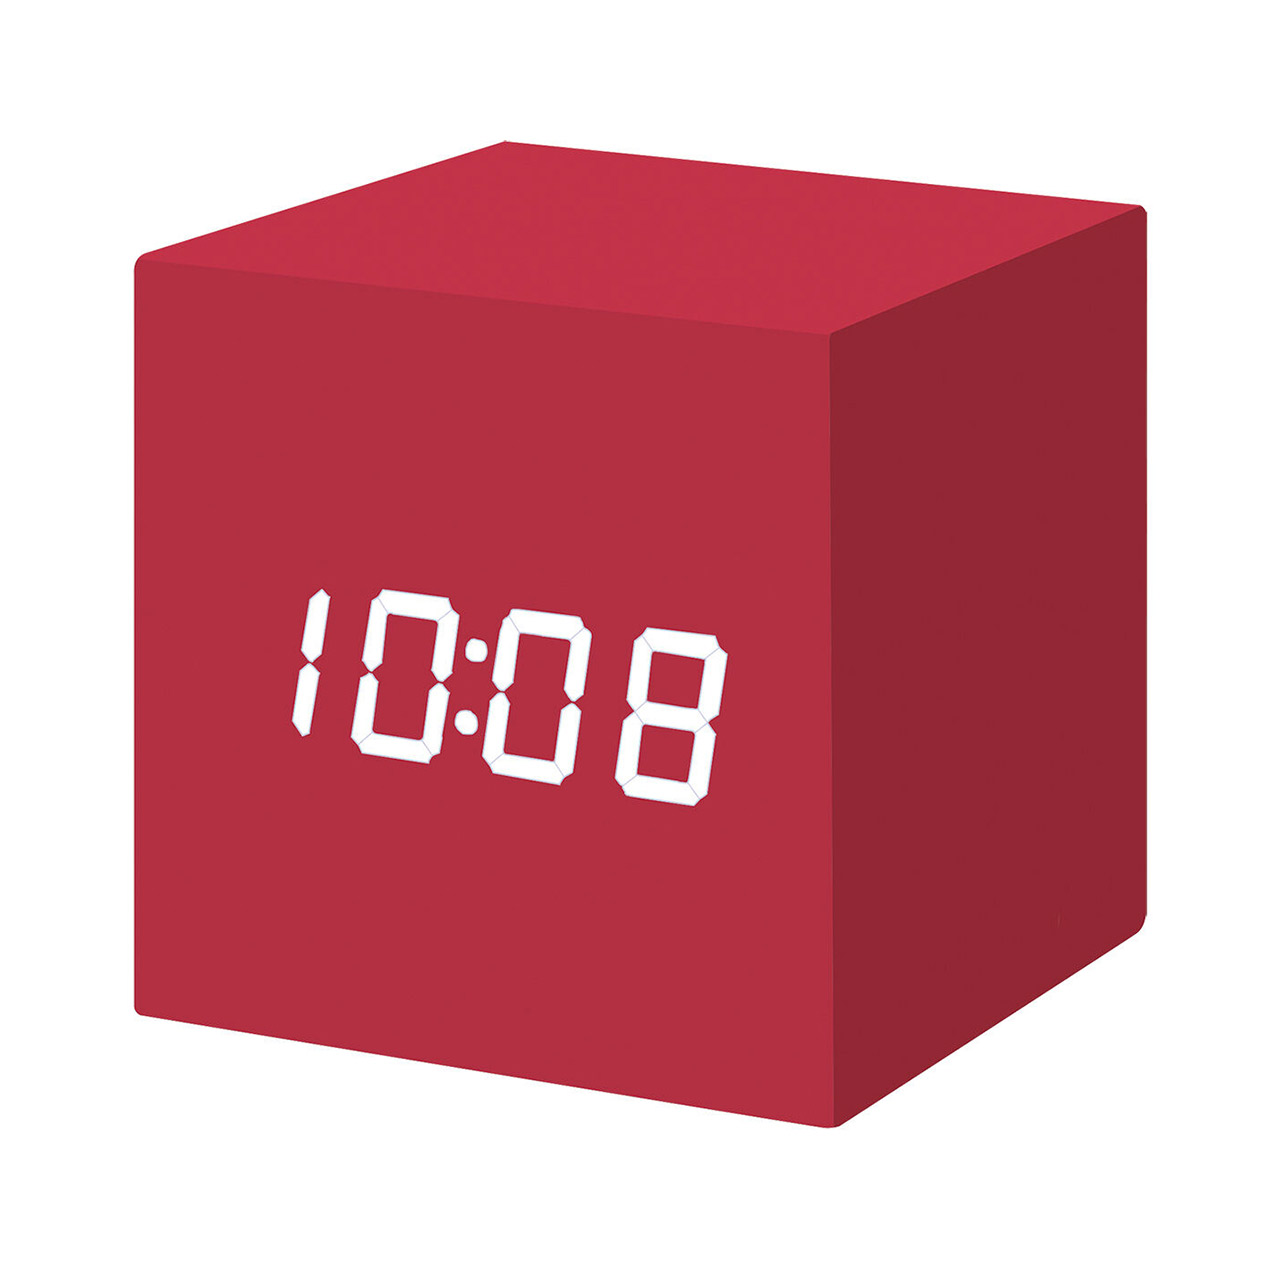 MoMA cube click clock red / white LED | the design gift shop